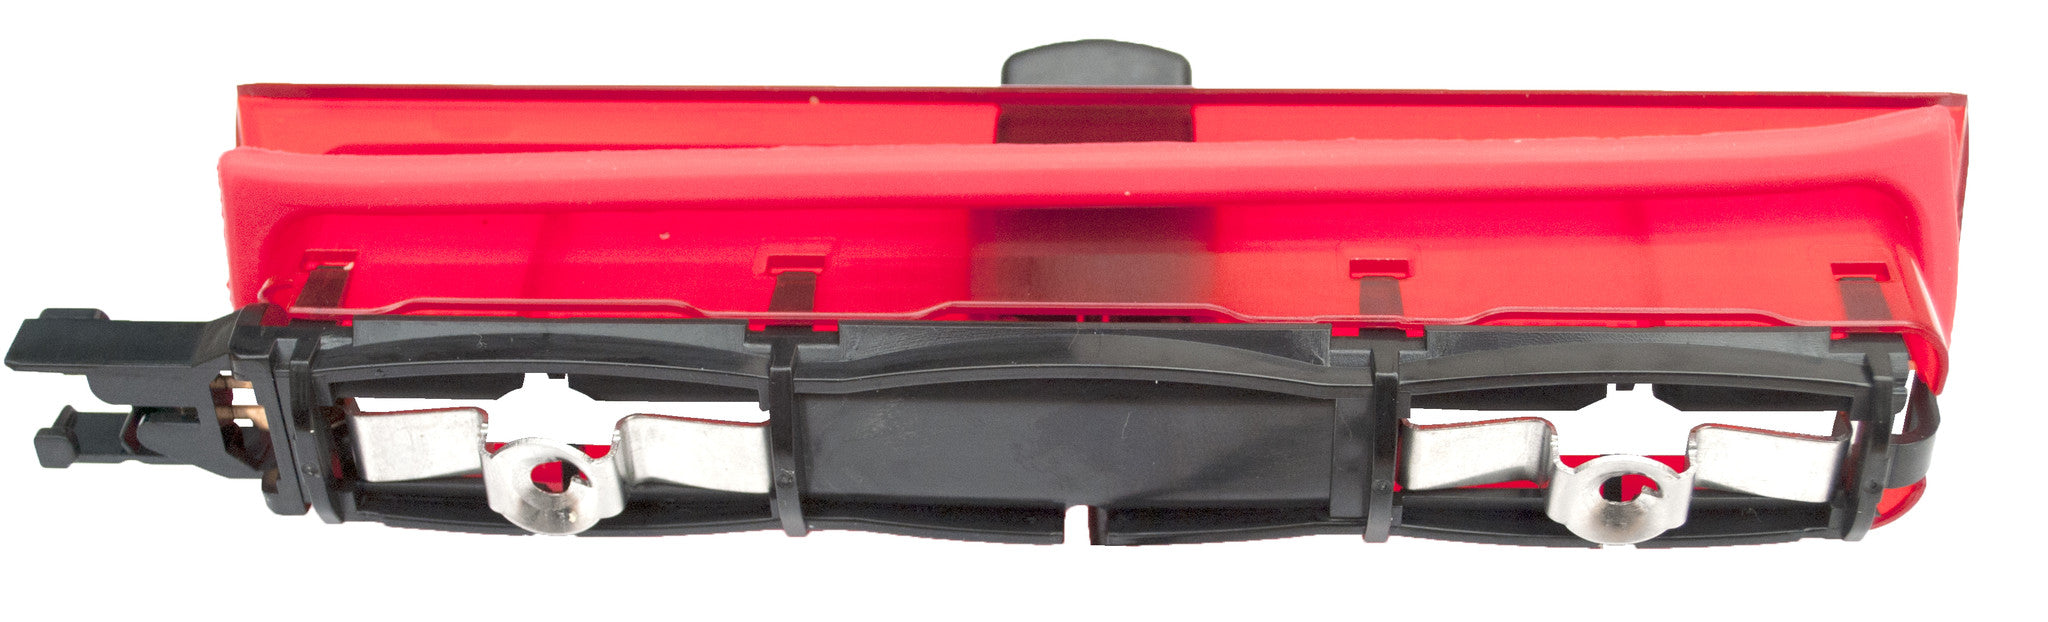 Volkswagen Caddy Brake Light Reversing Camera